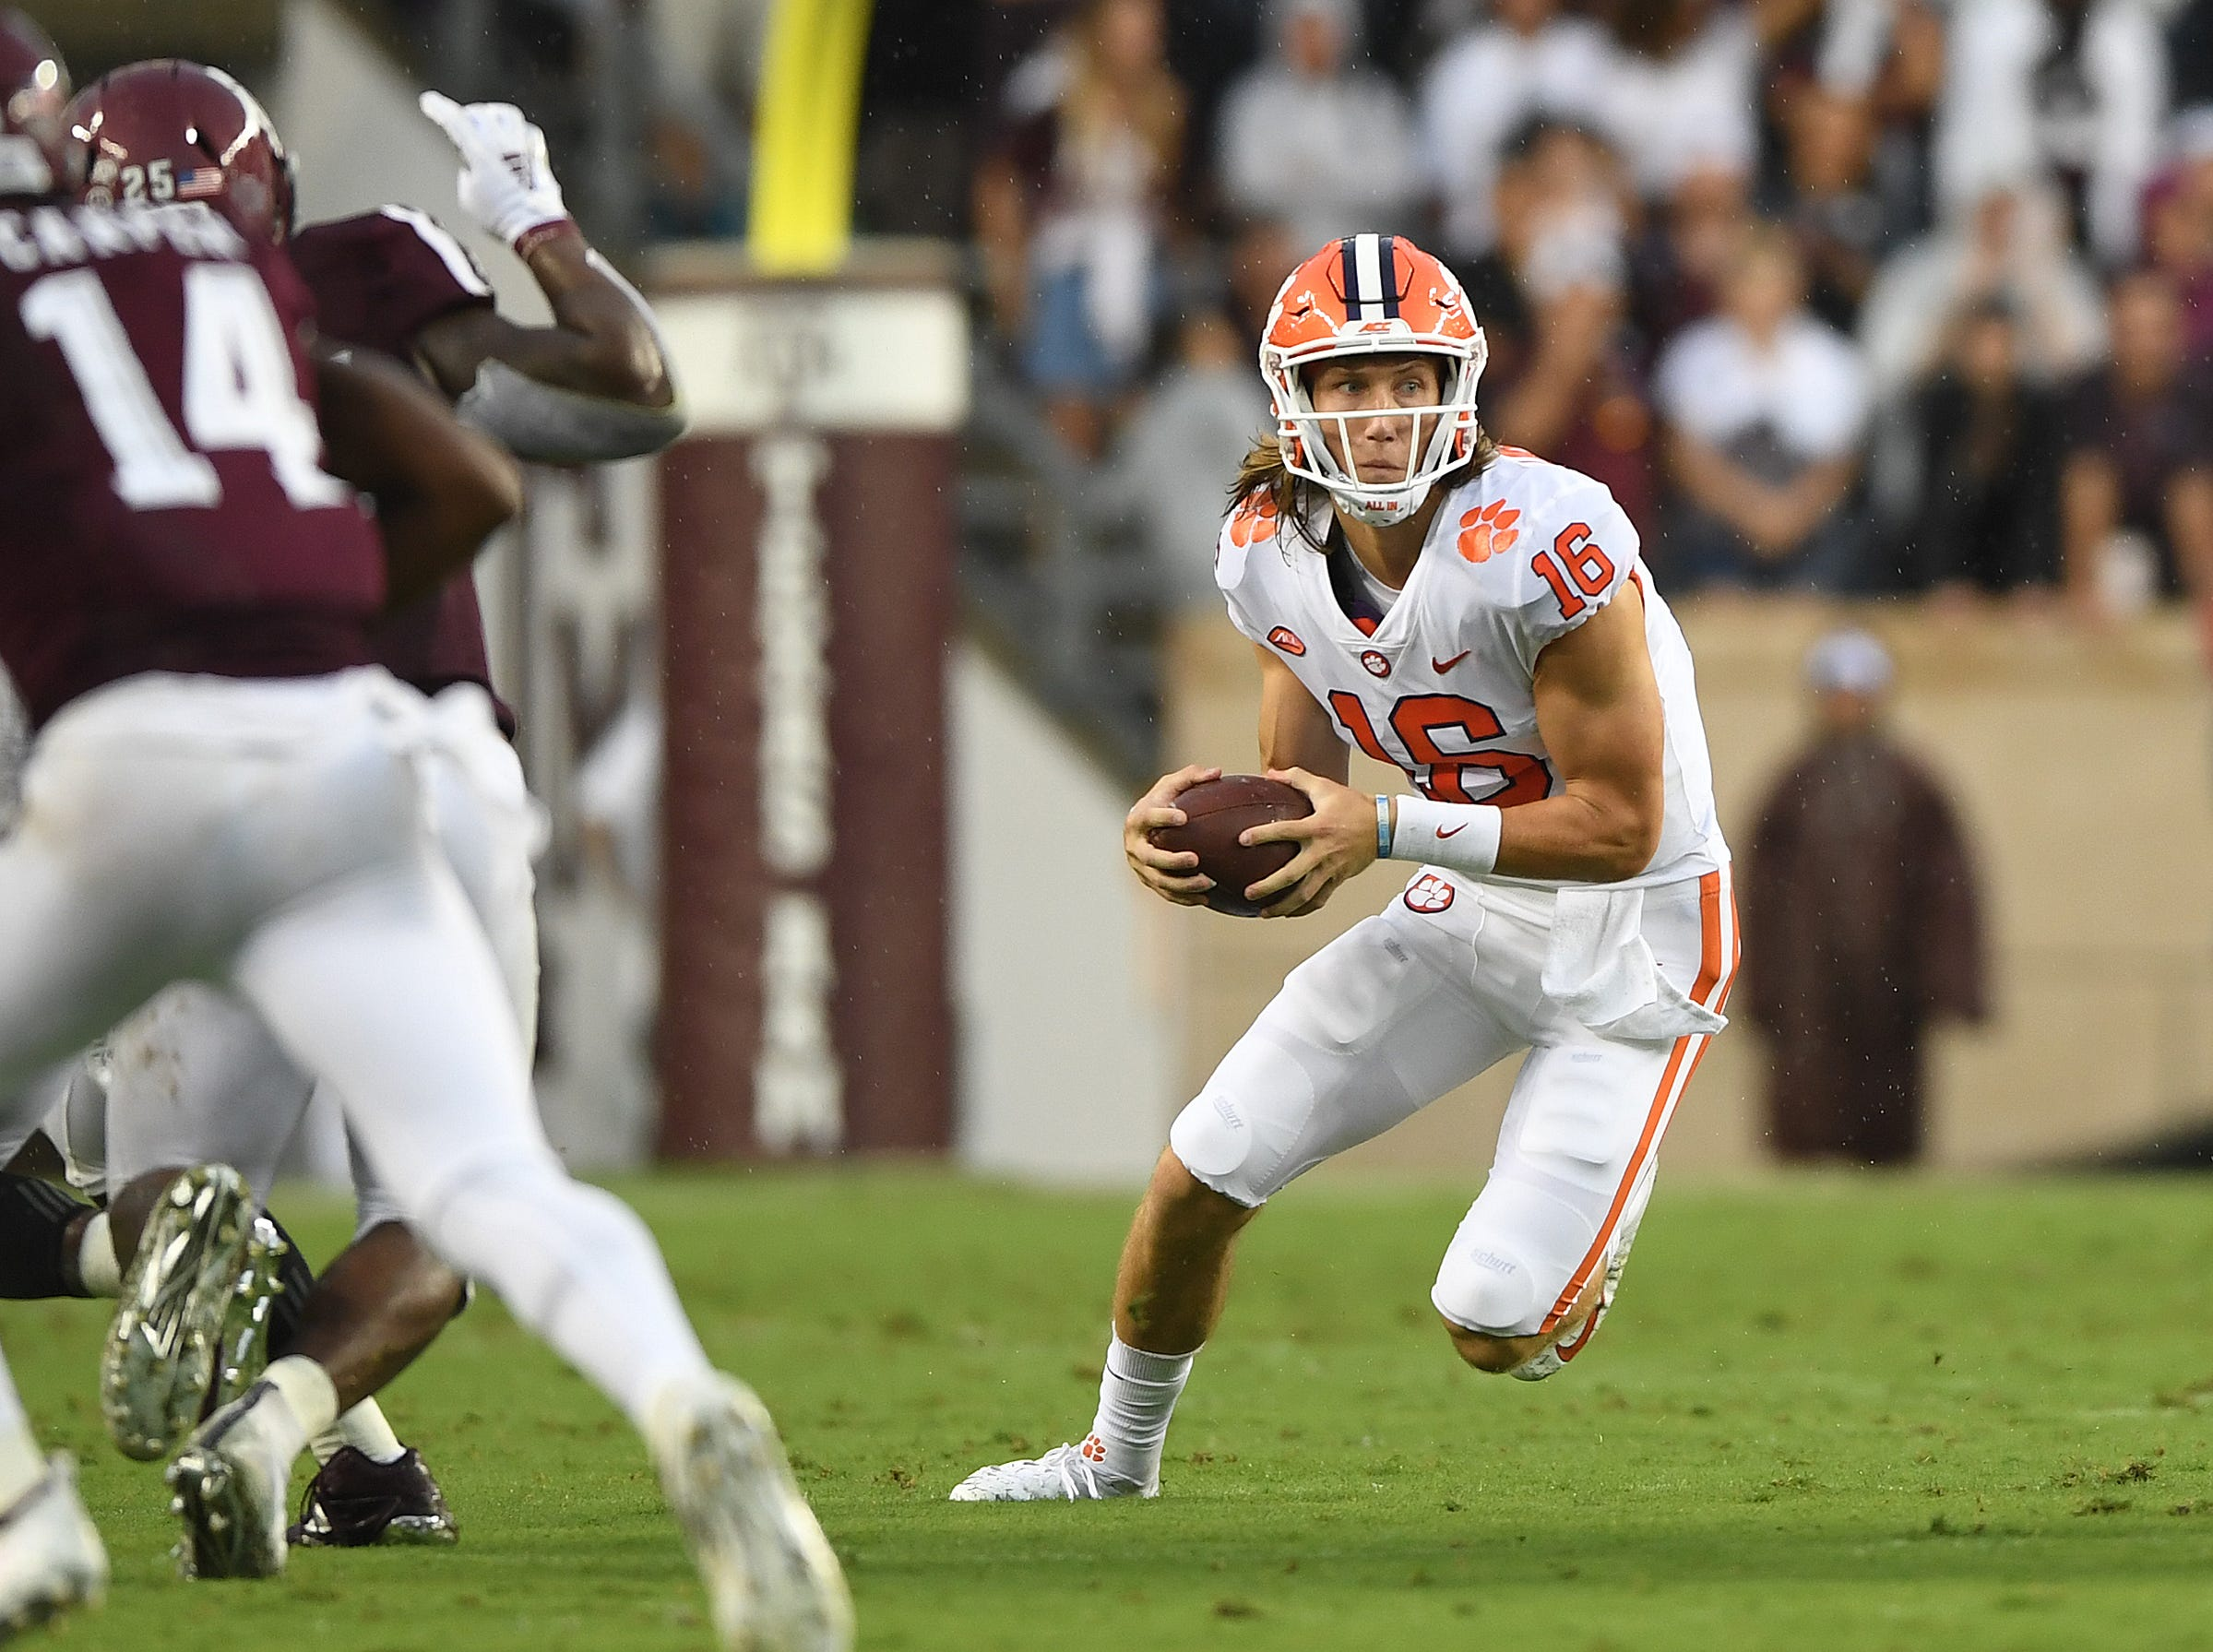 Clemson quarterback Trevor Lawrence (16) plays against Texas A&M during the 2nd quarter at Texas A&M's Kyle Field in College Station, TX Saturday, September 8, 2018.